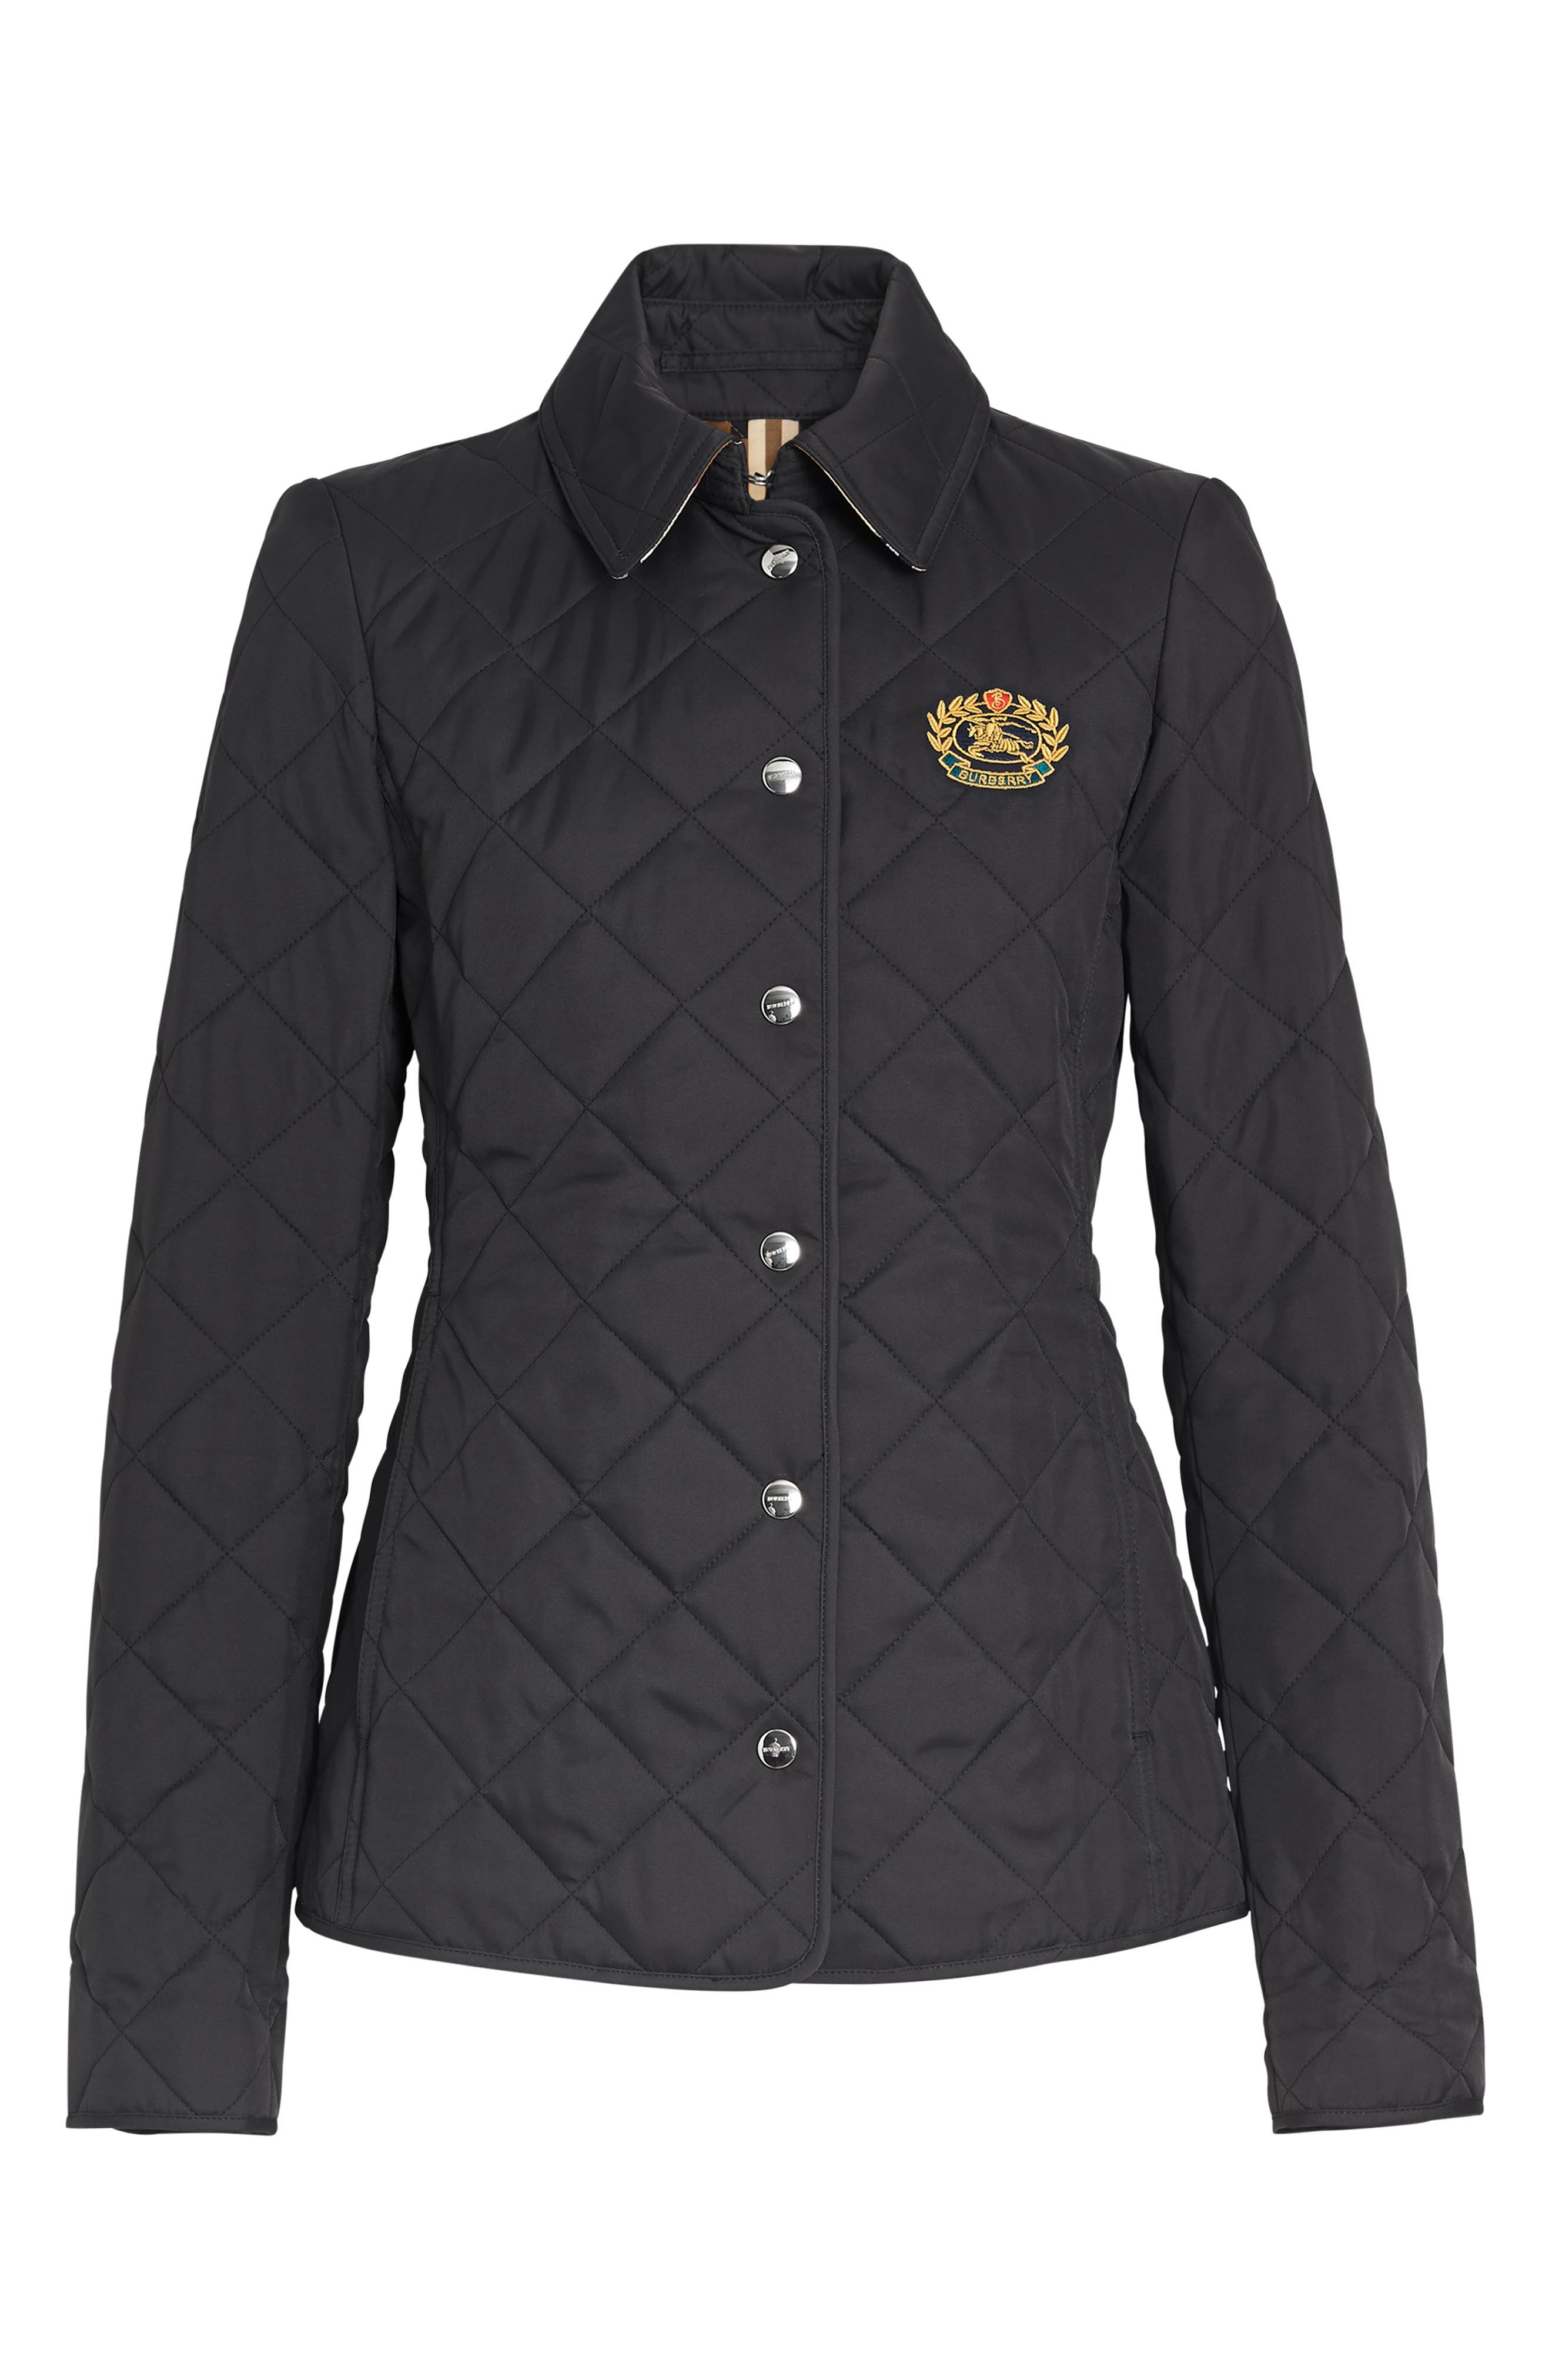 Franwell Diamond Quilted Jacket,                             Alternate thumbnail 5, color,                             BLACK